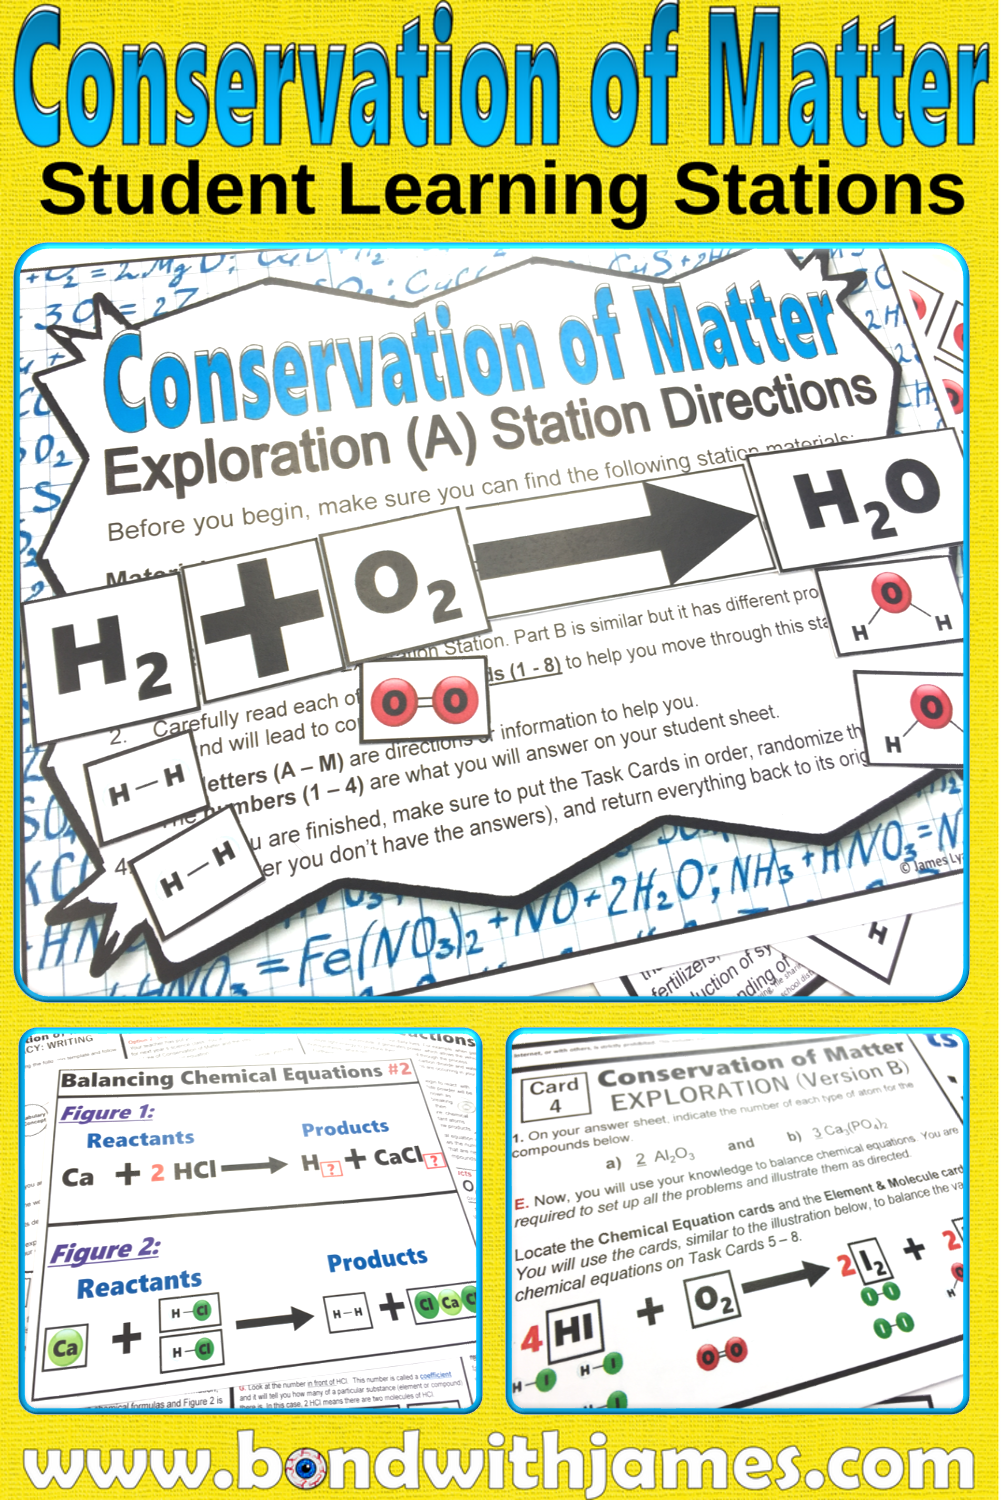 small resolution of Conservation of Matter Student Learning Stations